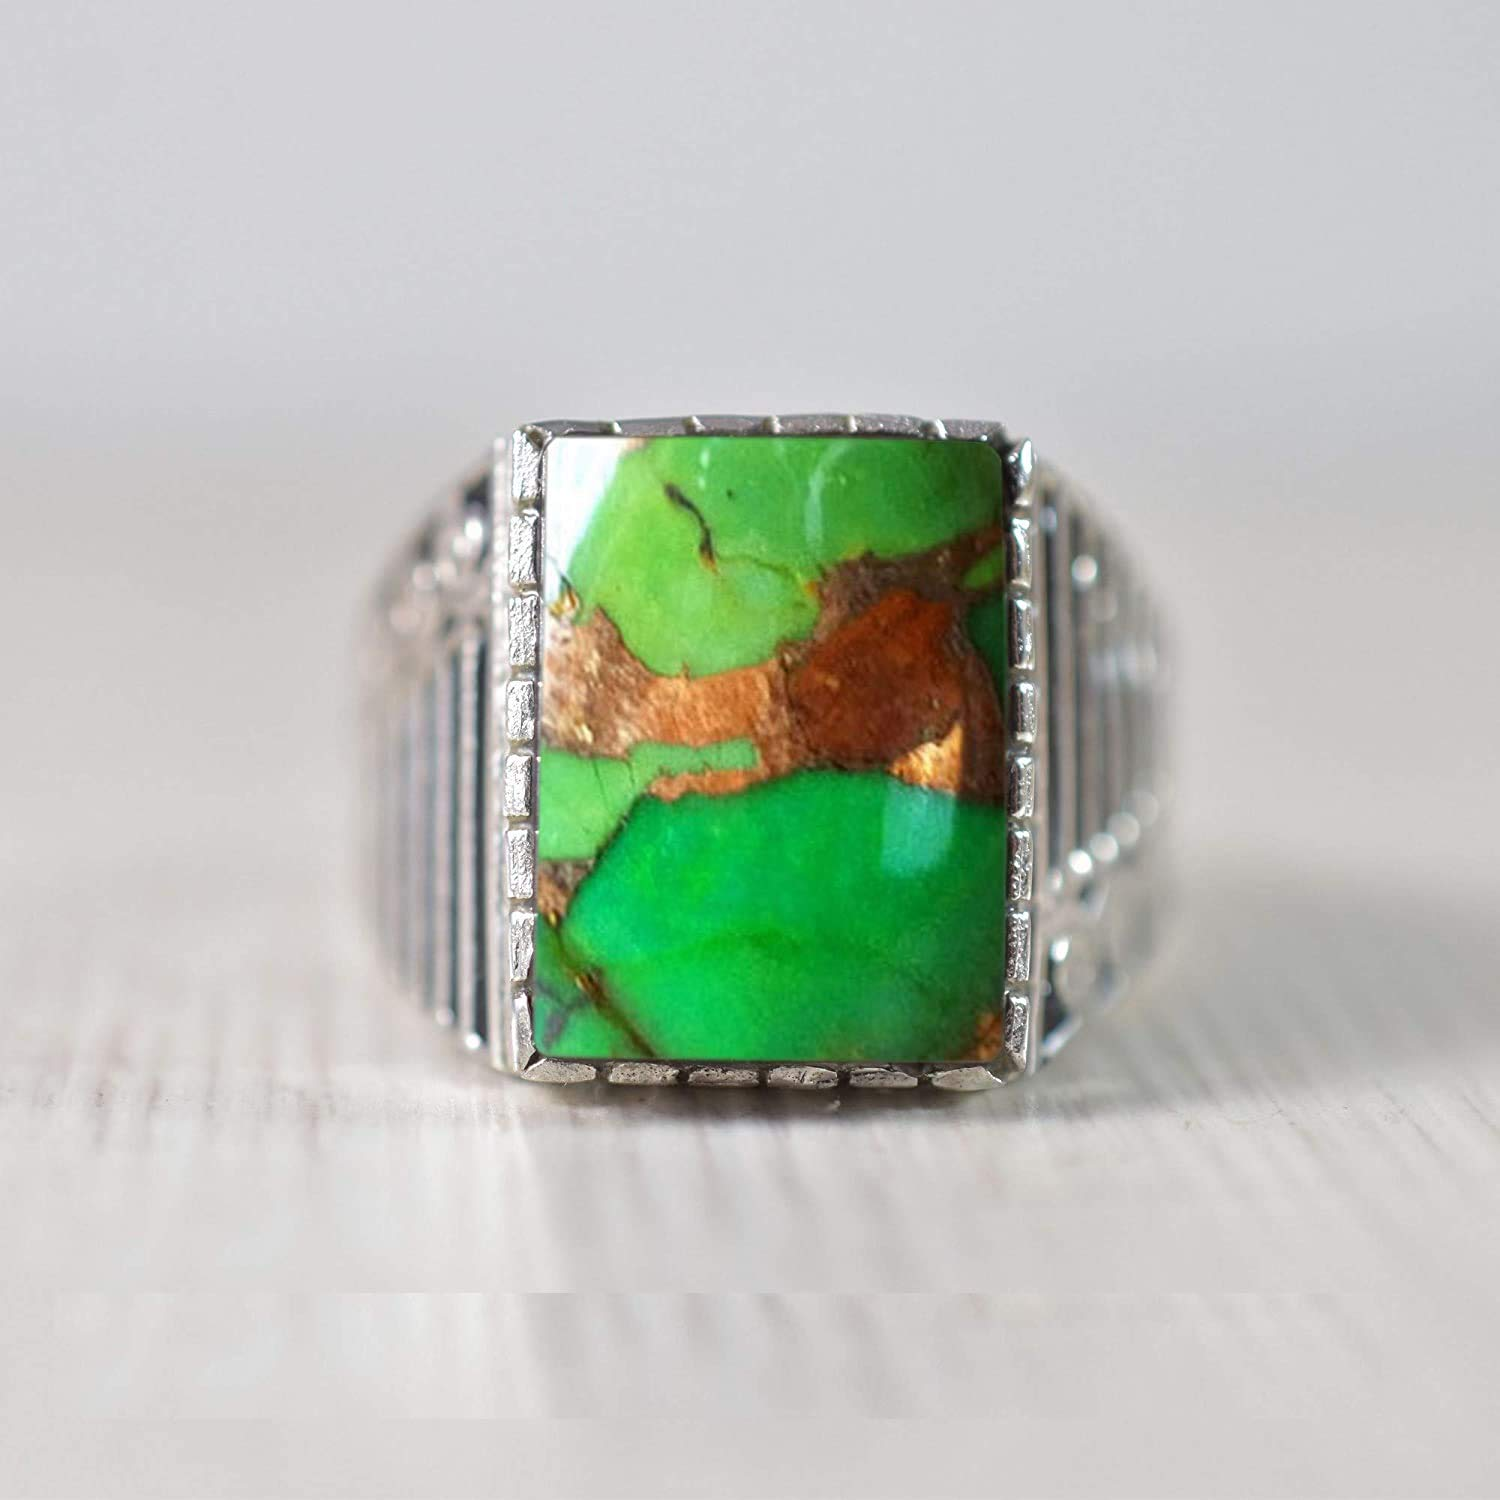 Green Copper Turquoise Oval Shape Gemstone Ring For Father/'s Day Gift 925 Sterling Silver Hand Made Ring Size US 6.5 ar3457